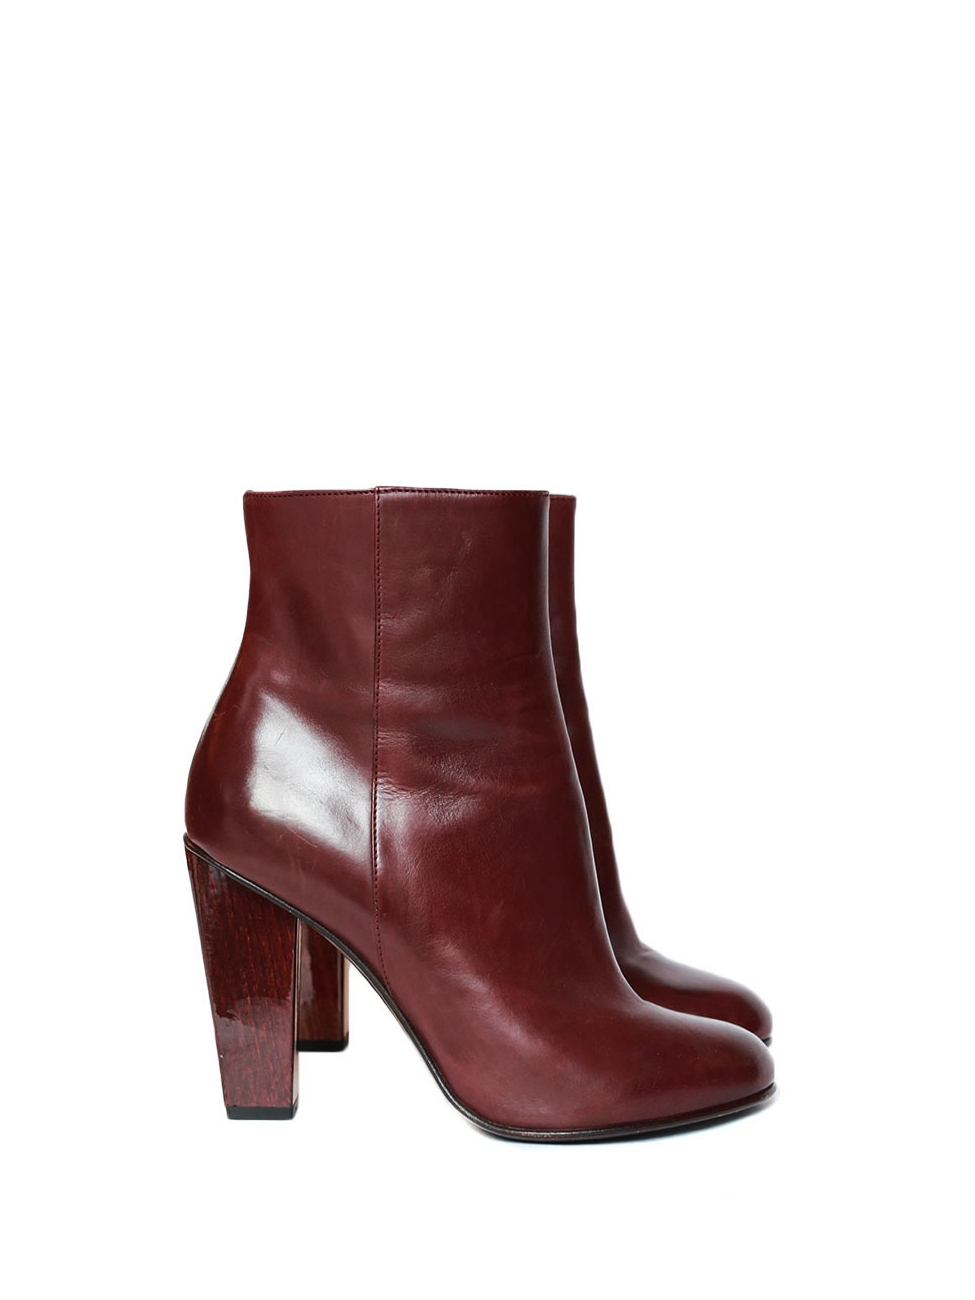 bb5c95f49b8b Burgundy leather and wooden heel high ankle boots Retail price €700 Size 36